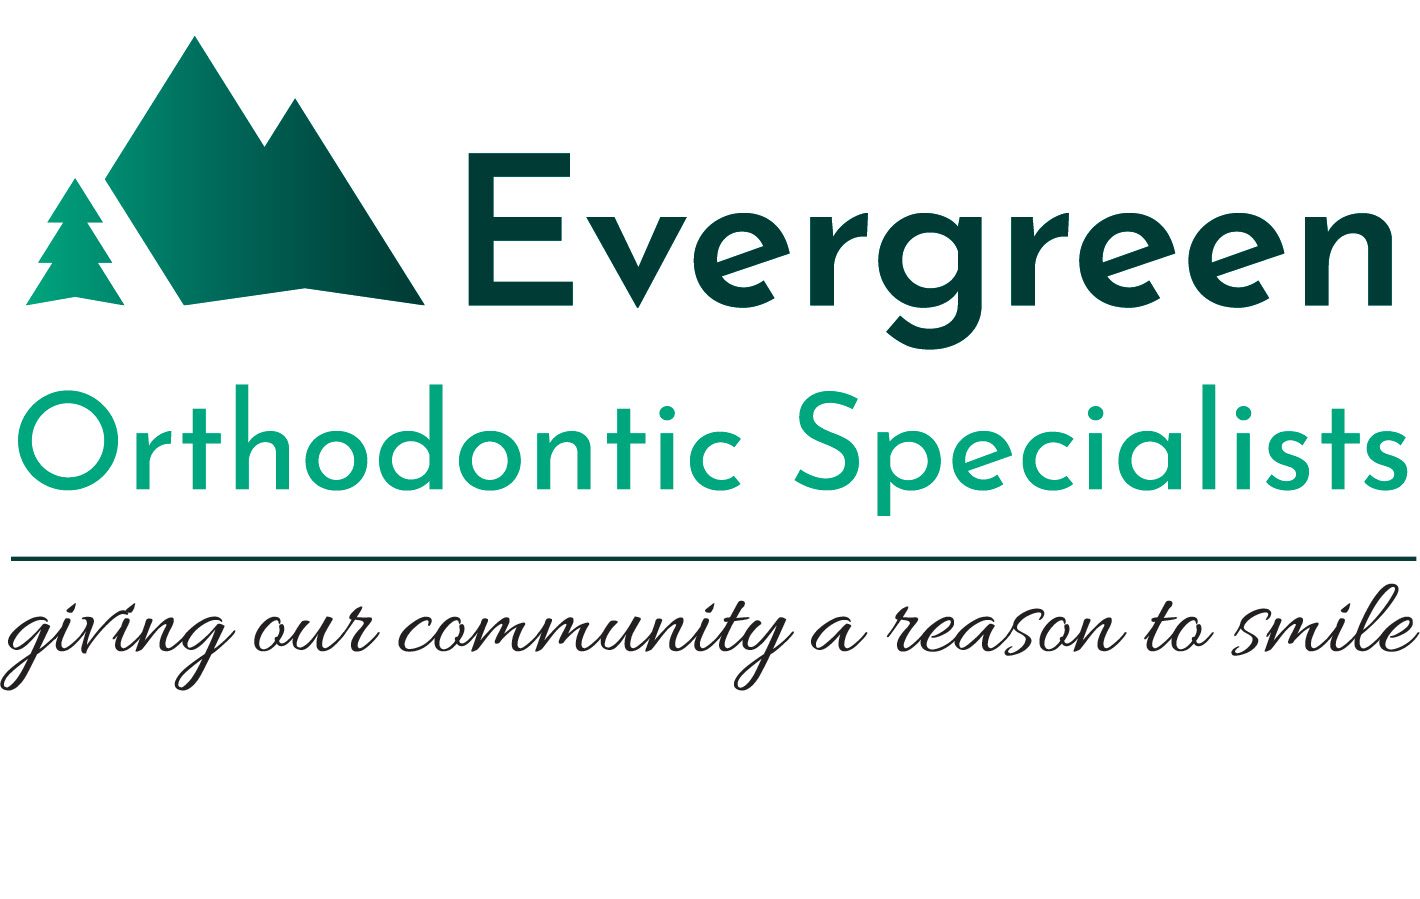 Evergreen Orthodontics Specialists logo